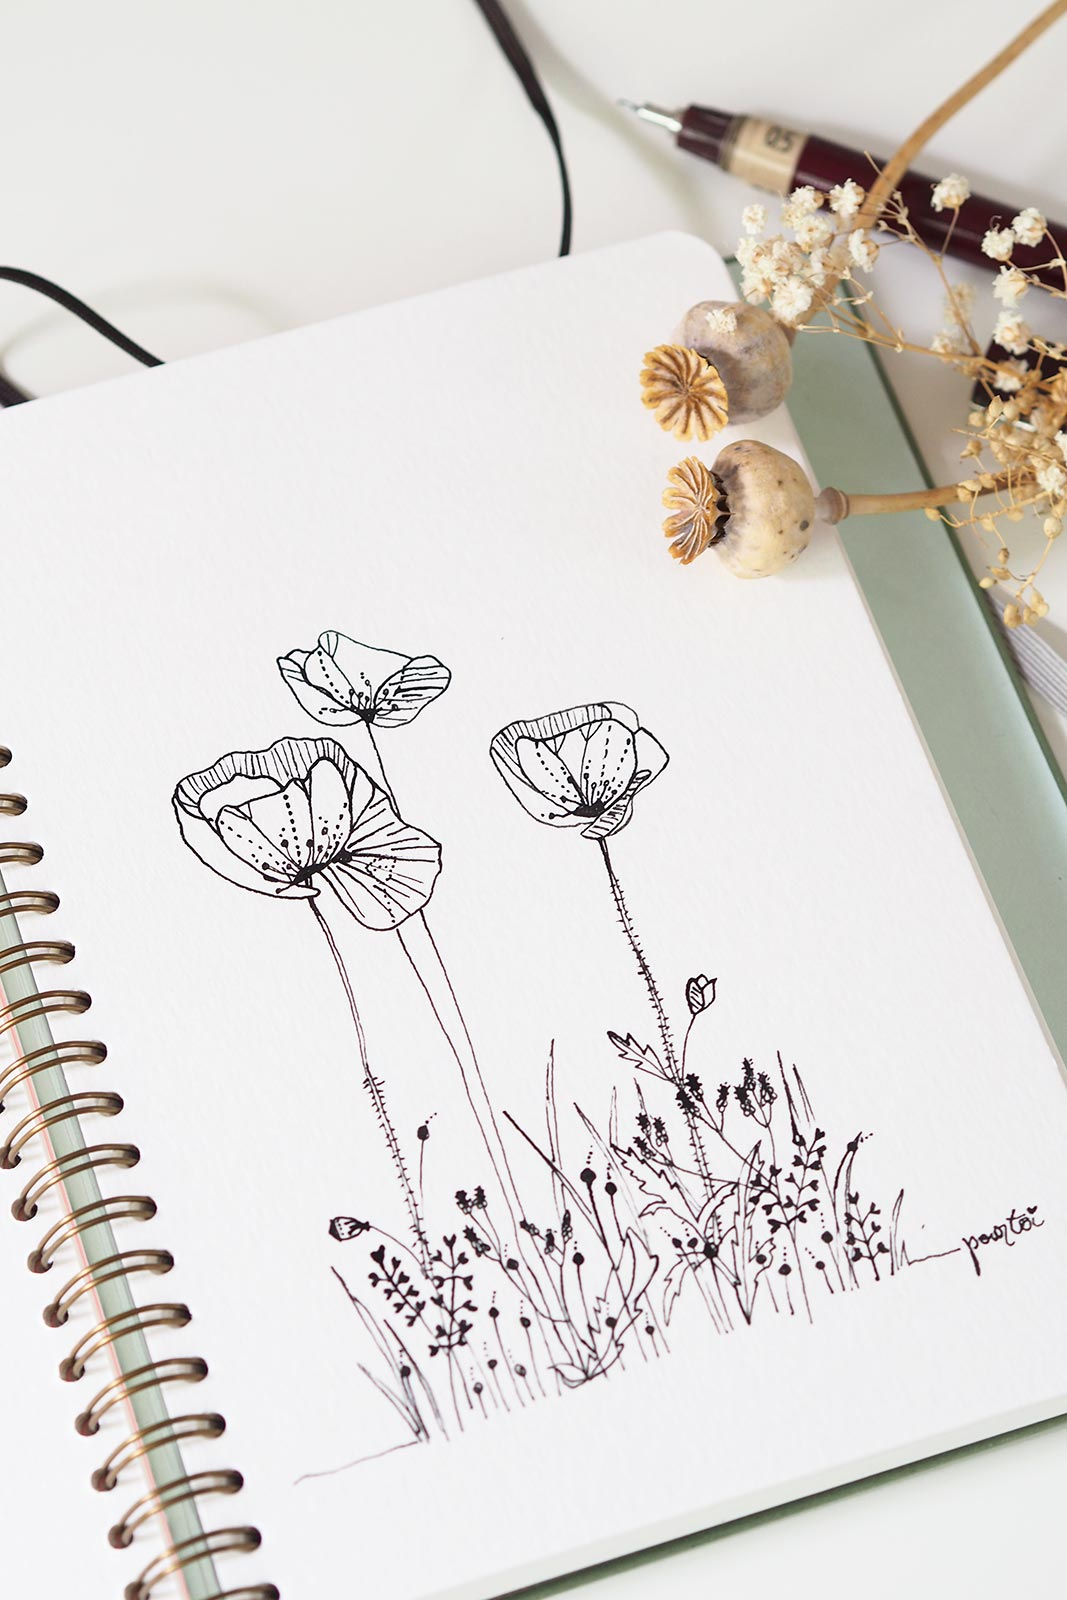 dessin coquelicots olalarte illustrations encre chine rotring boutique melimelo